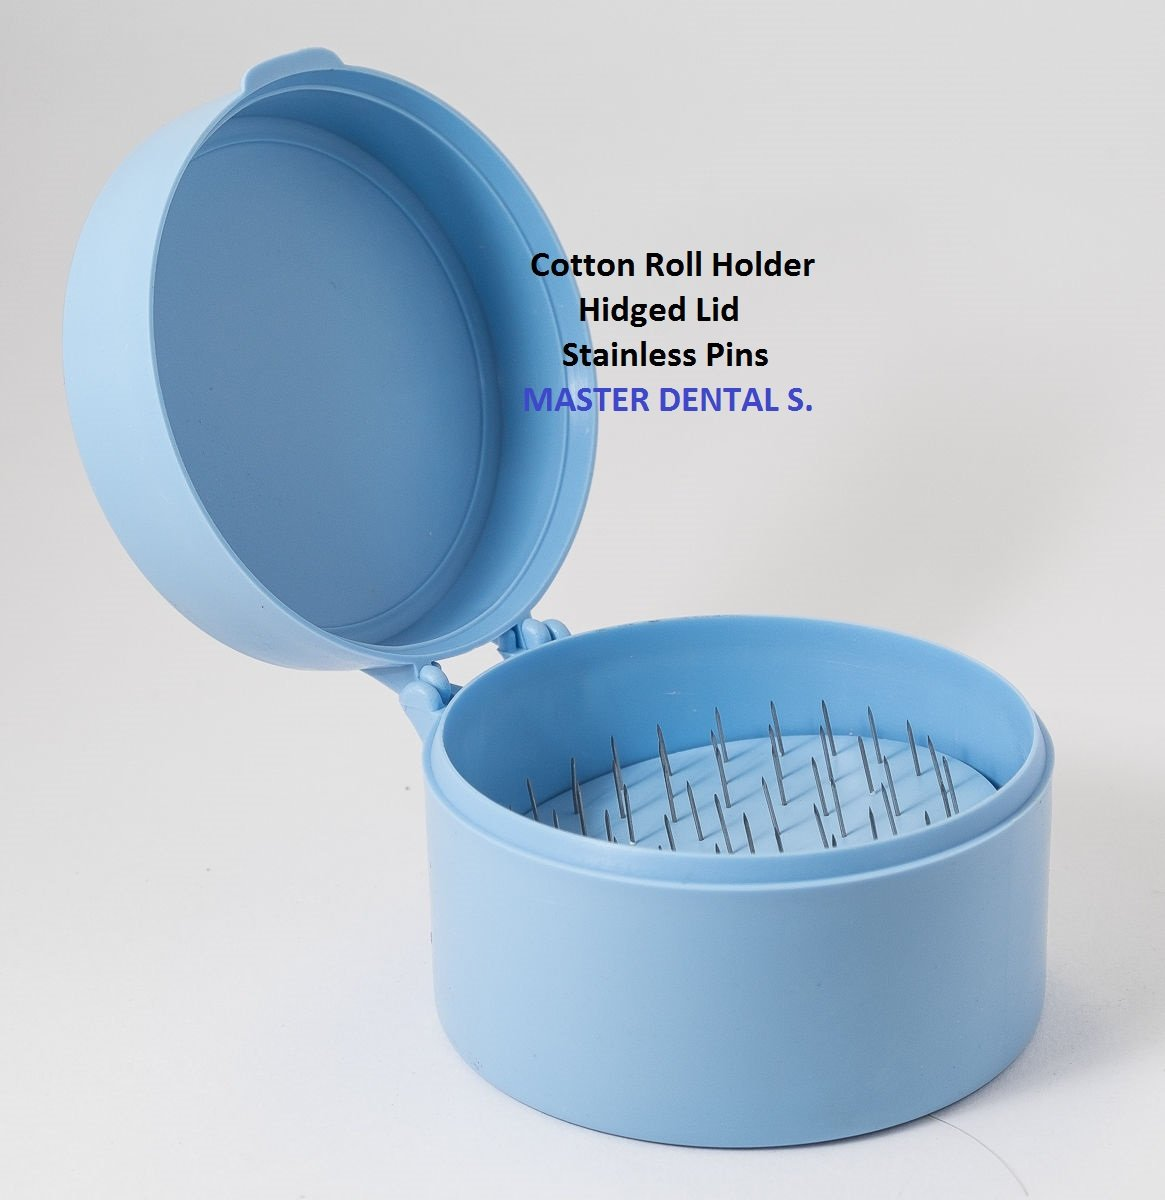 Dental Cotton Roll Dispenser Holder Organizer Case Roun Blue with Hinged Lid and Stainless Pins by House Brand